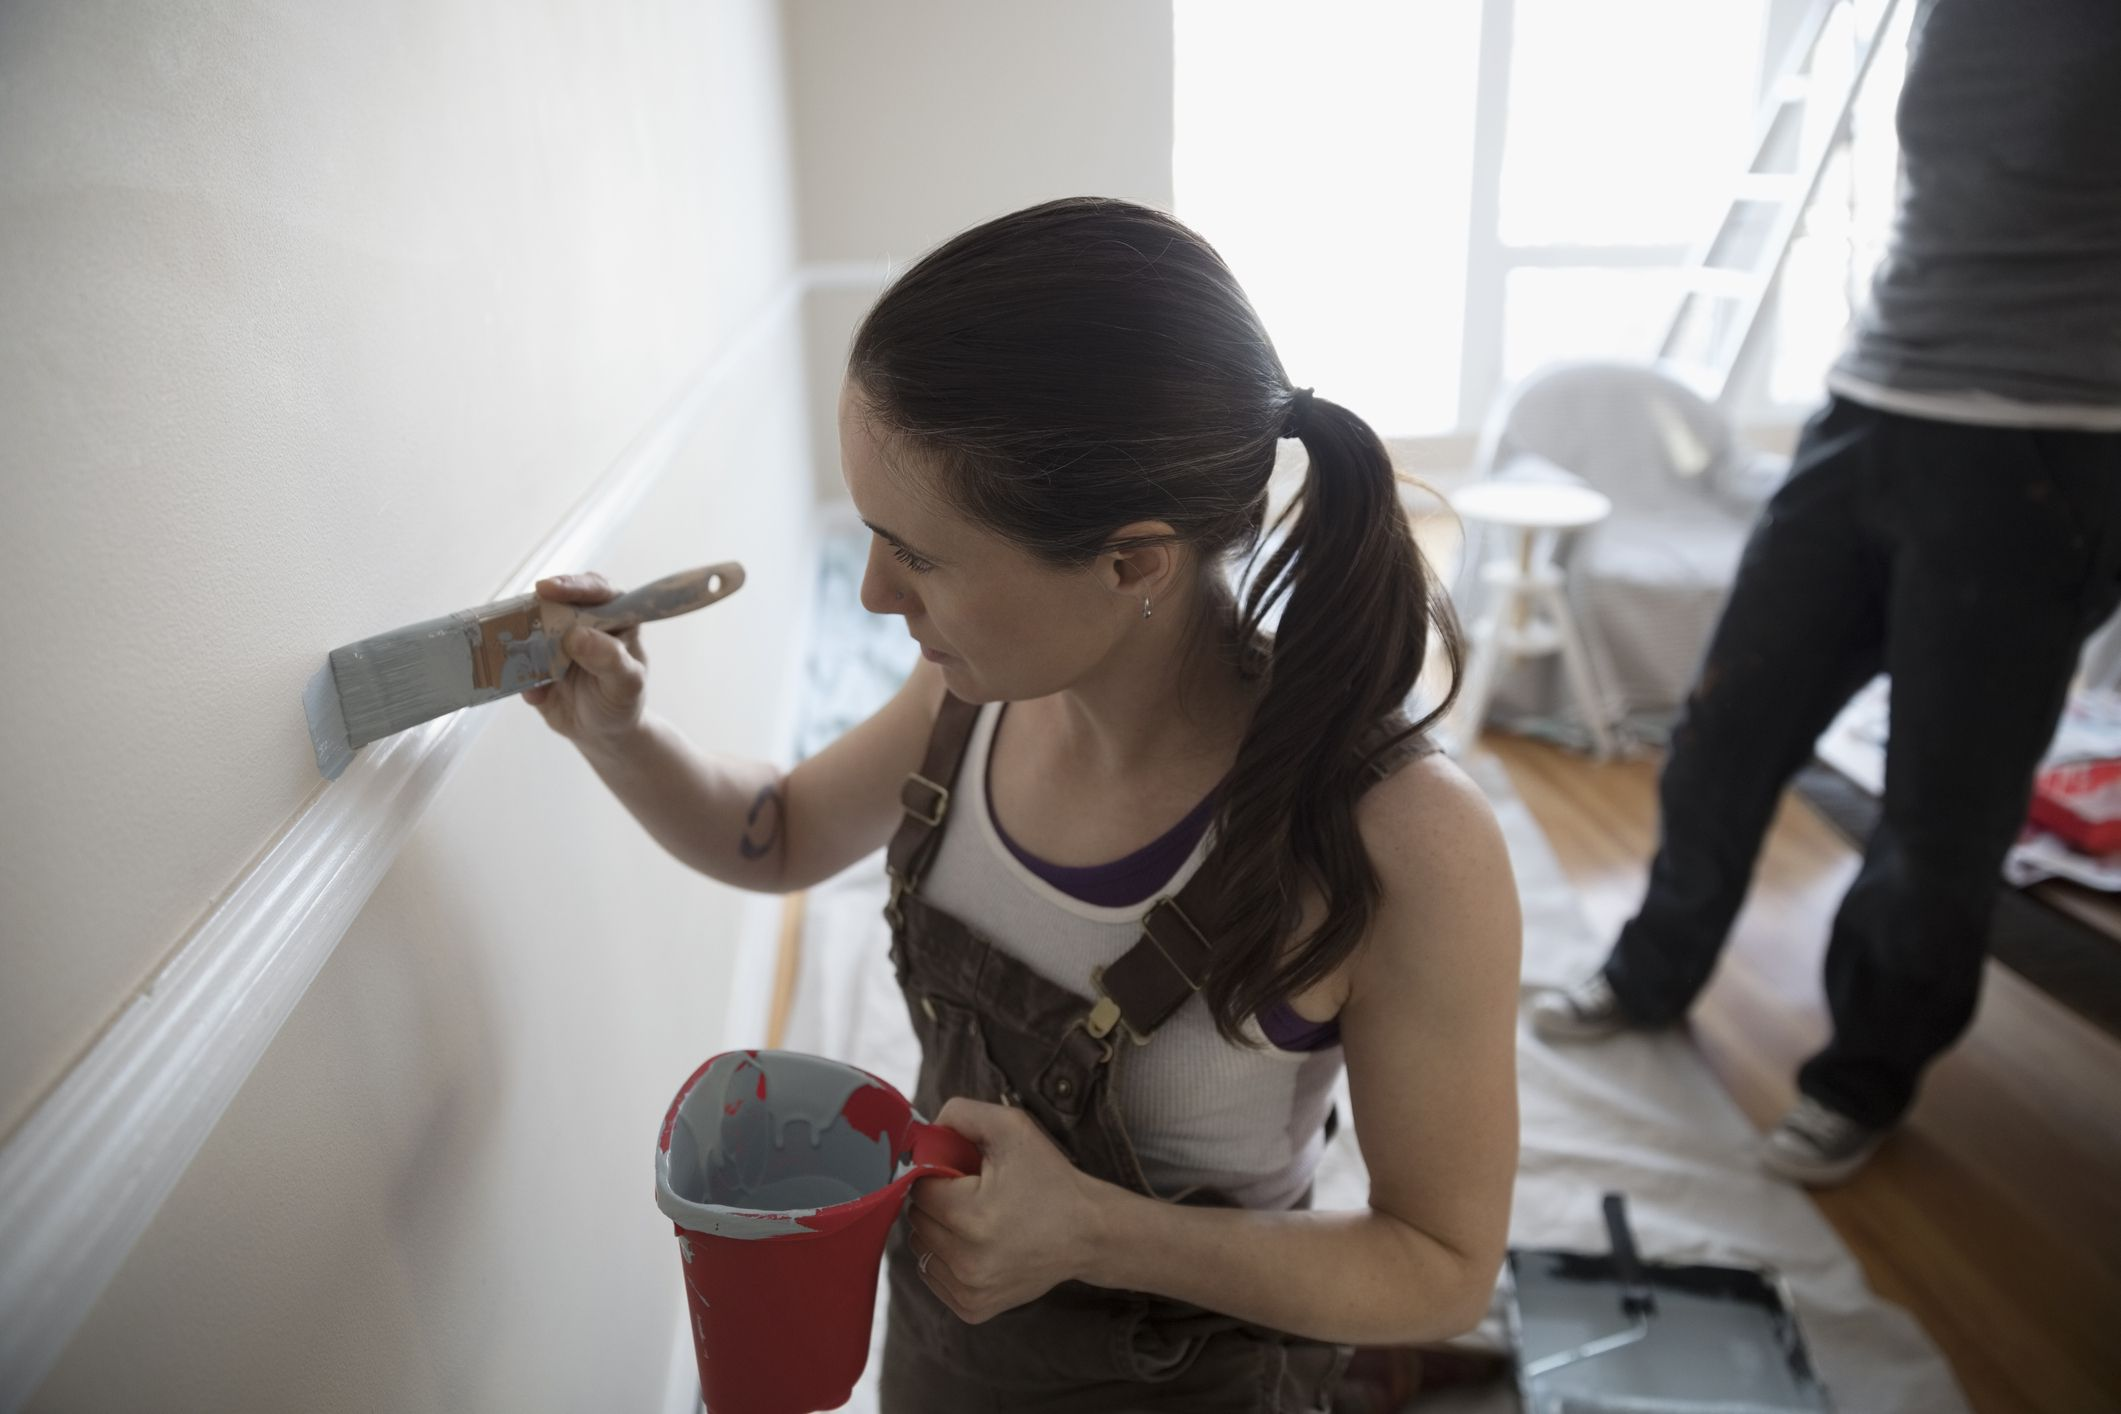 Painting Without Tape How Cutting In Can Save Taping